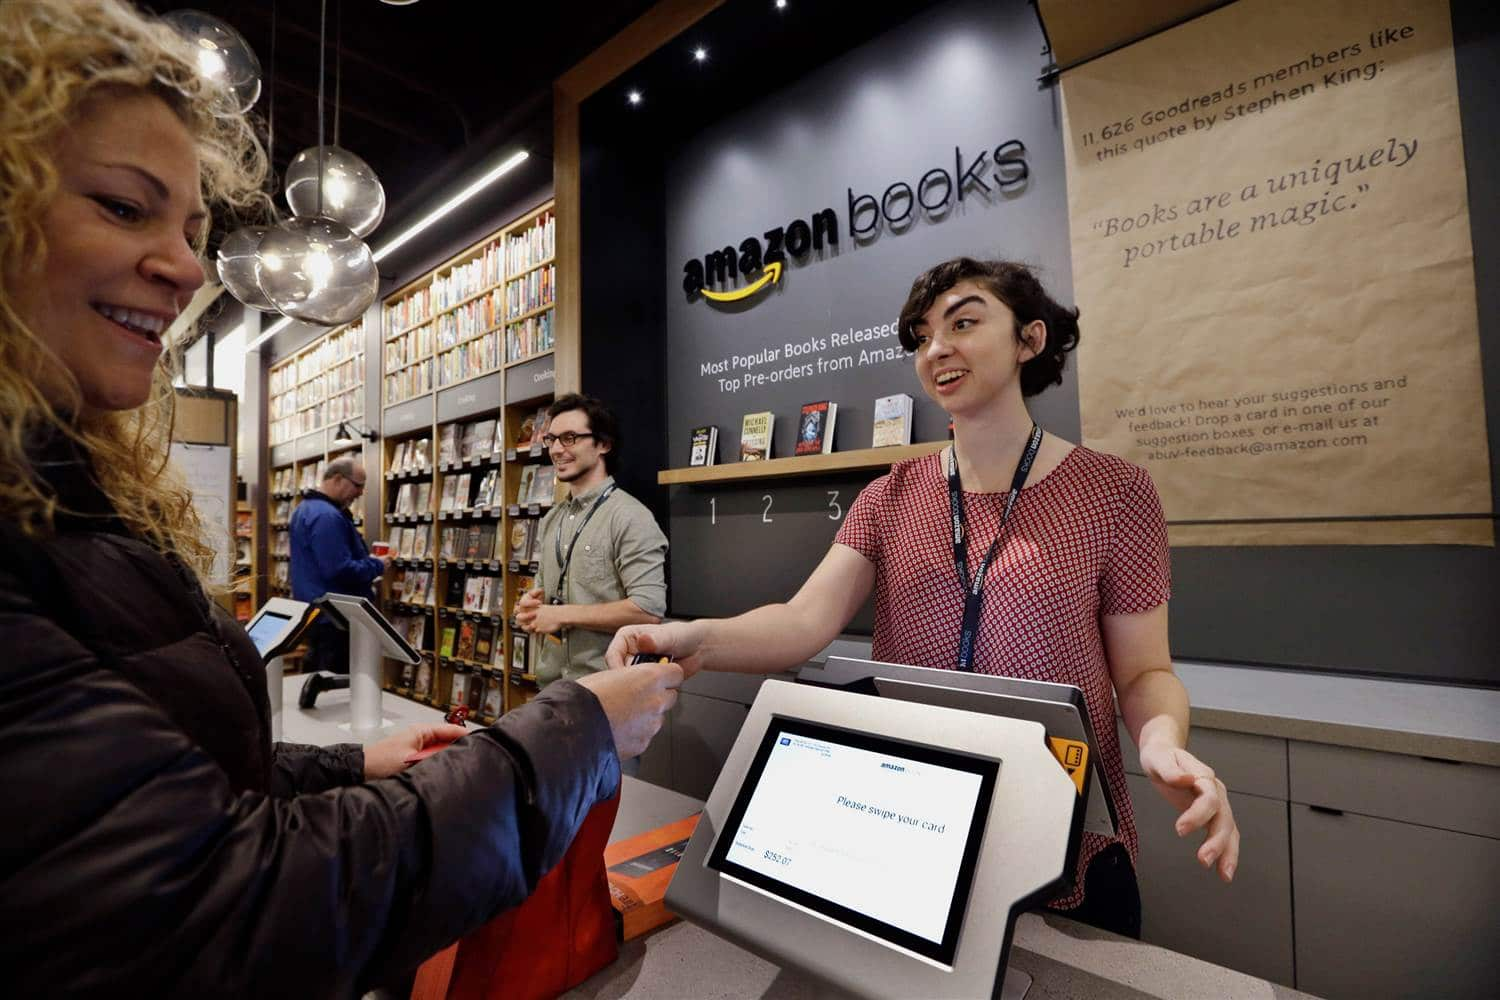 151103-amazon-bookstore-opening-yh-0313p_4382b2cb41cea897f170c205535282a4.nbcnews-ux-2880-1000